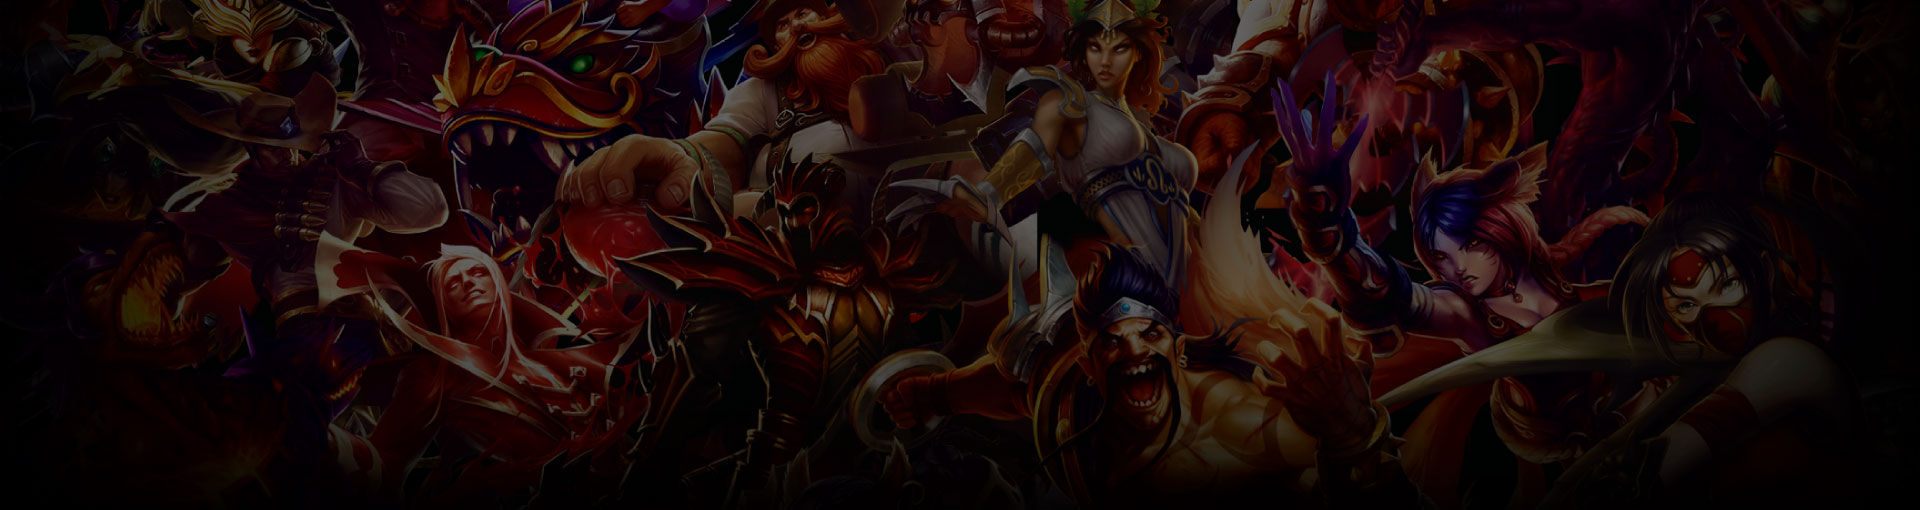 League of Legends Background Image